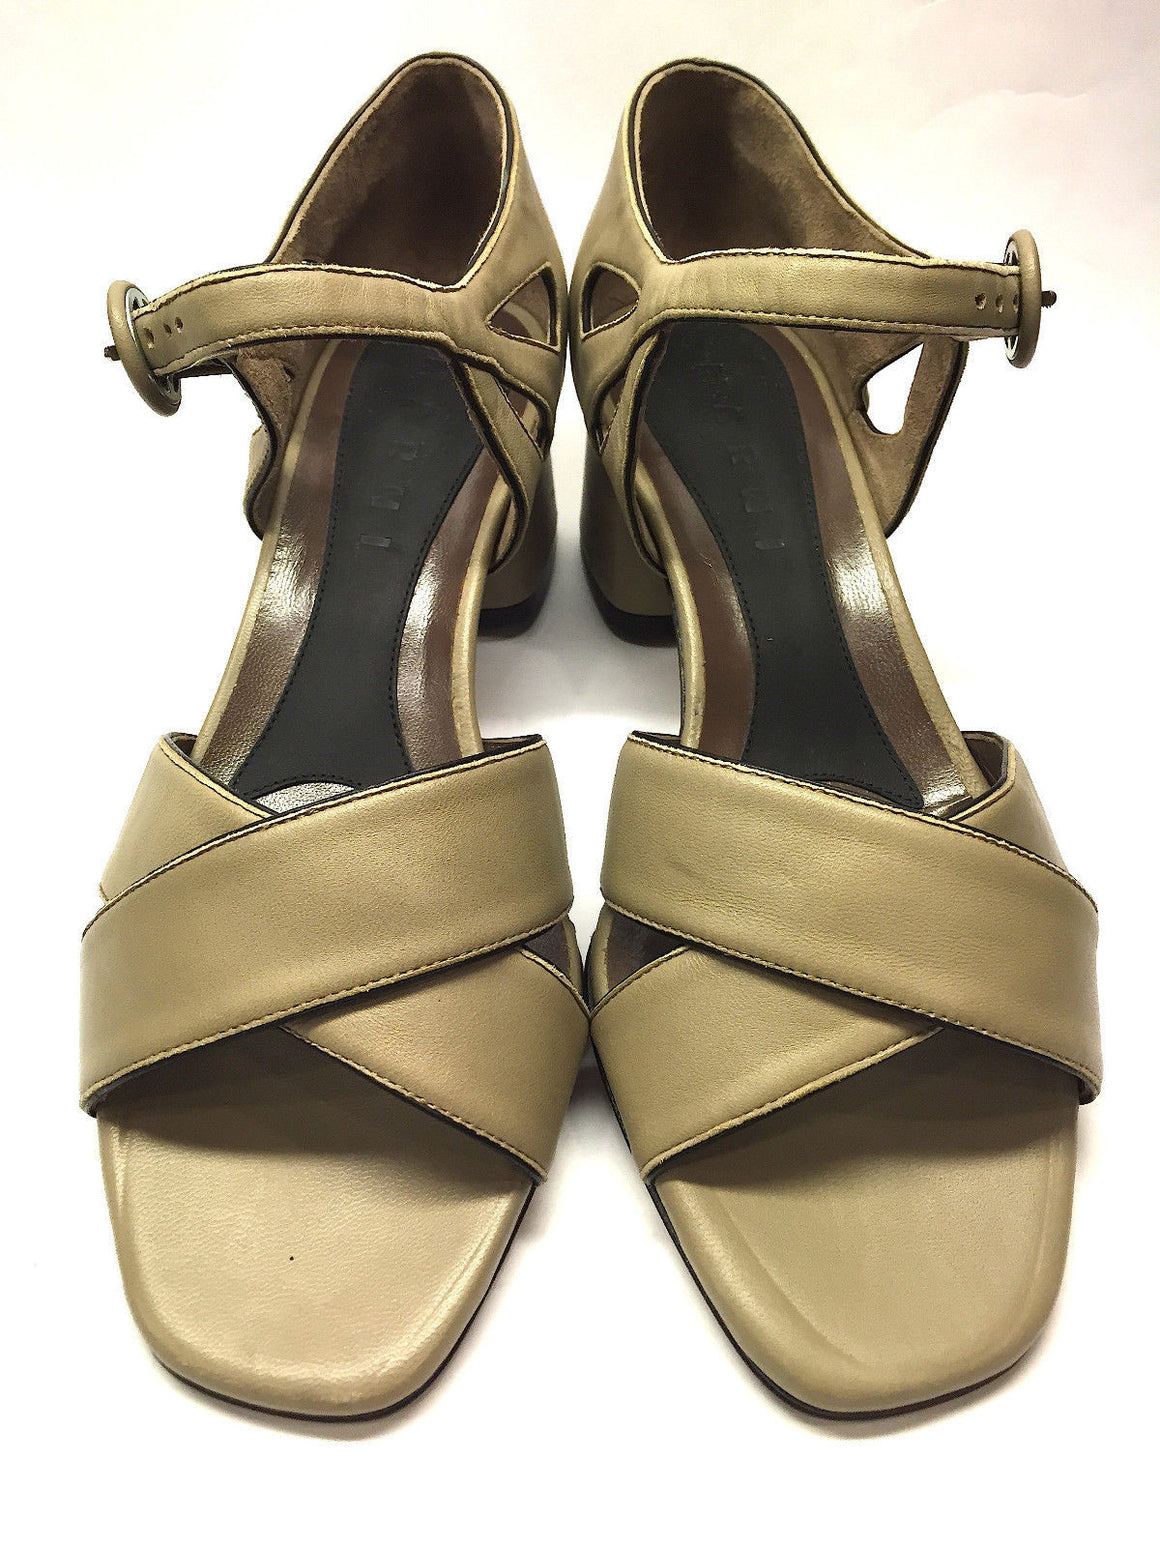 bisbiz.com MARNI Taupe Leather Open-Toe Ankle-Strap  Block-Heel Sandals Shoes  Size: 36.5 / 6.5 Description: - Bis Luxury Resale